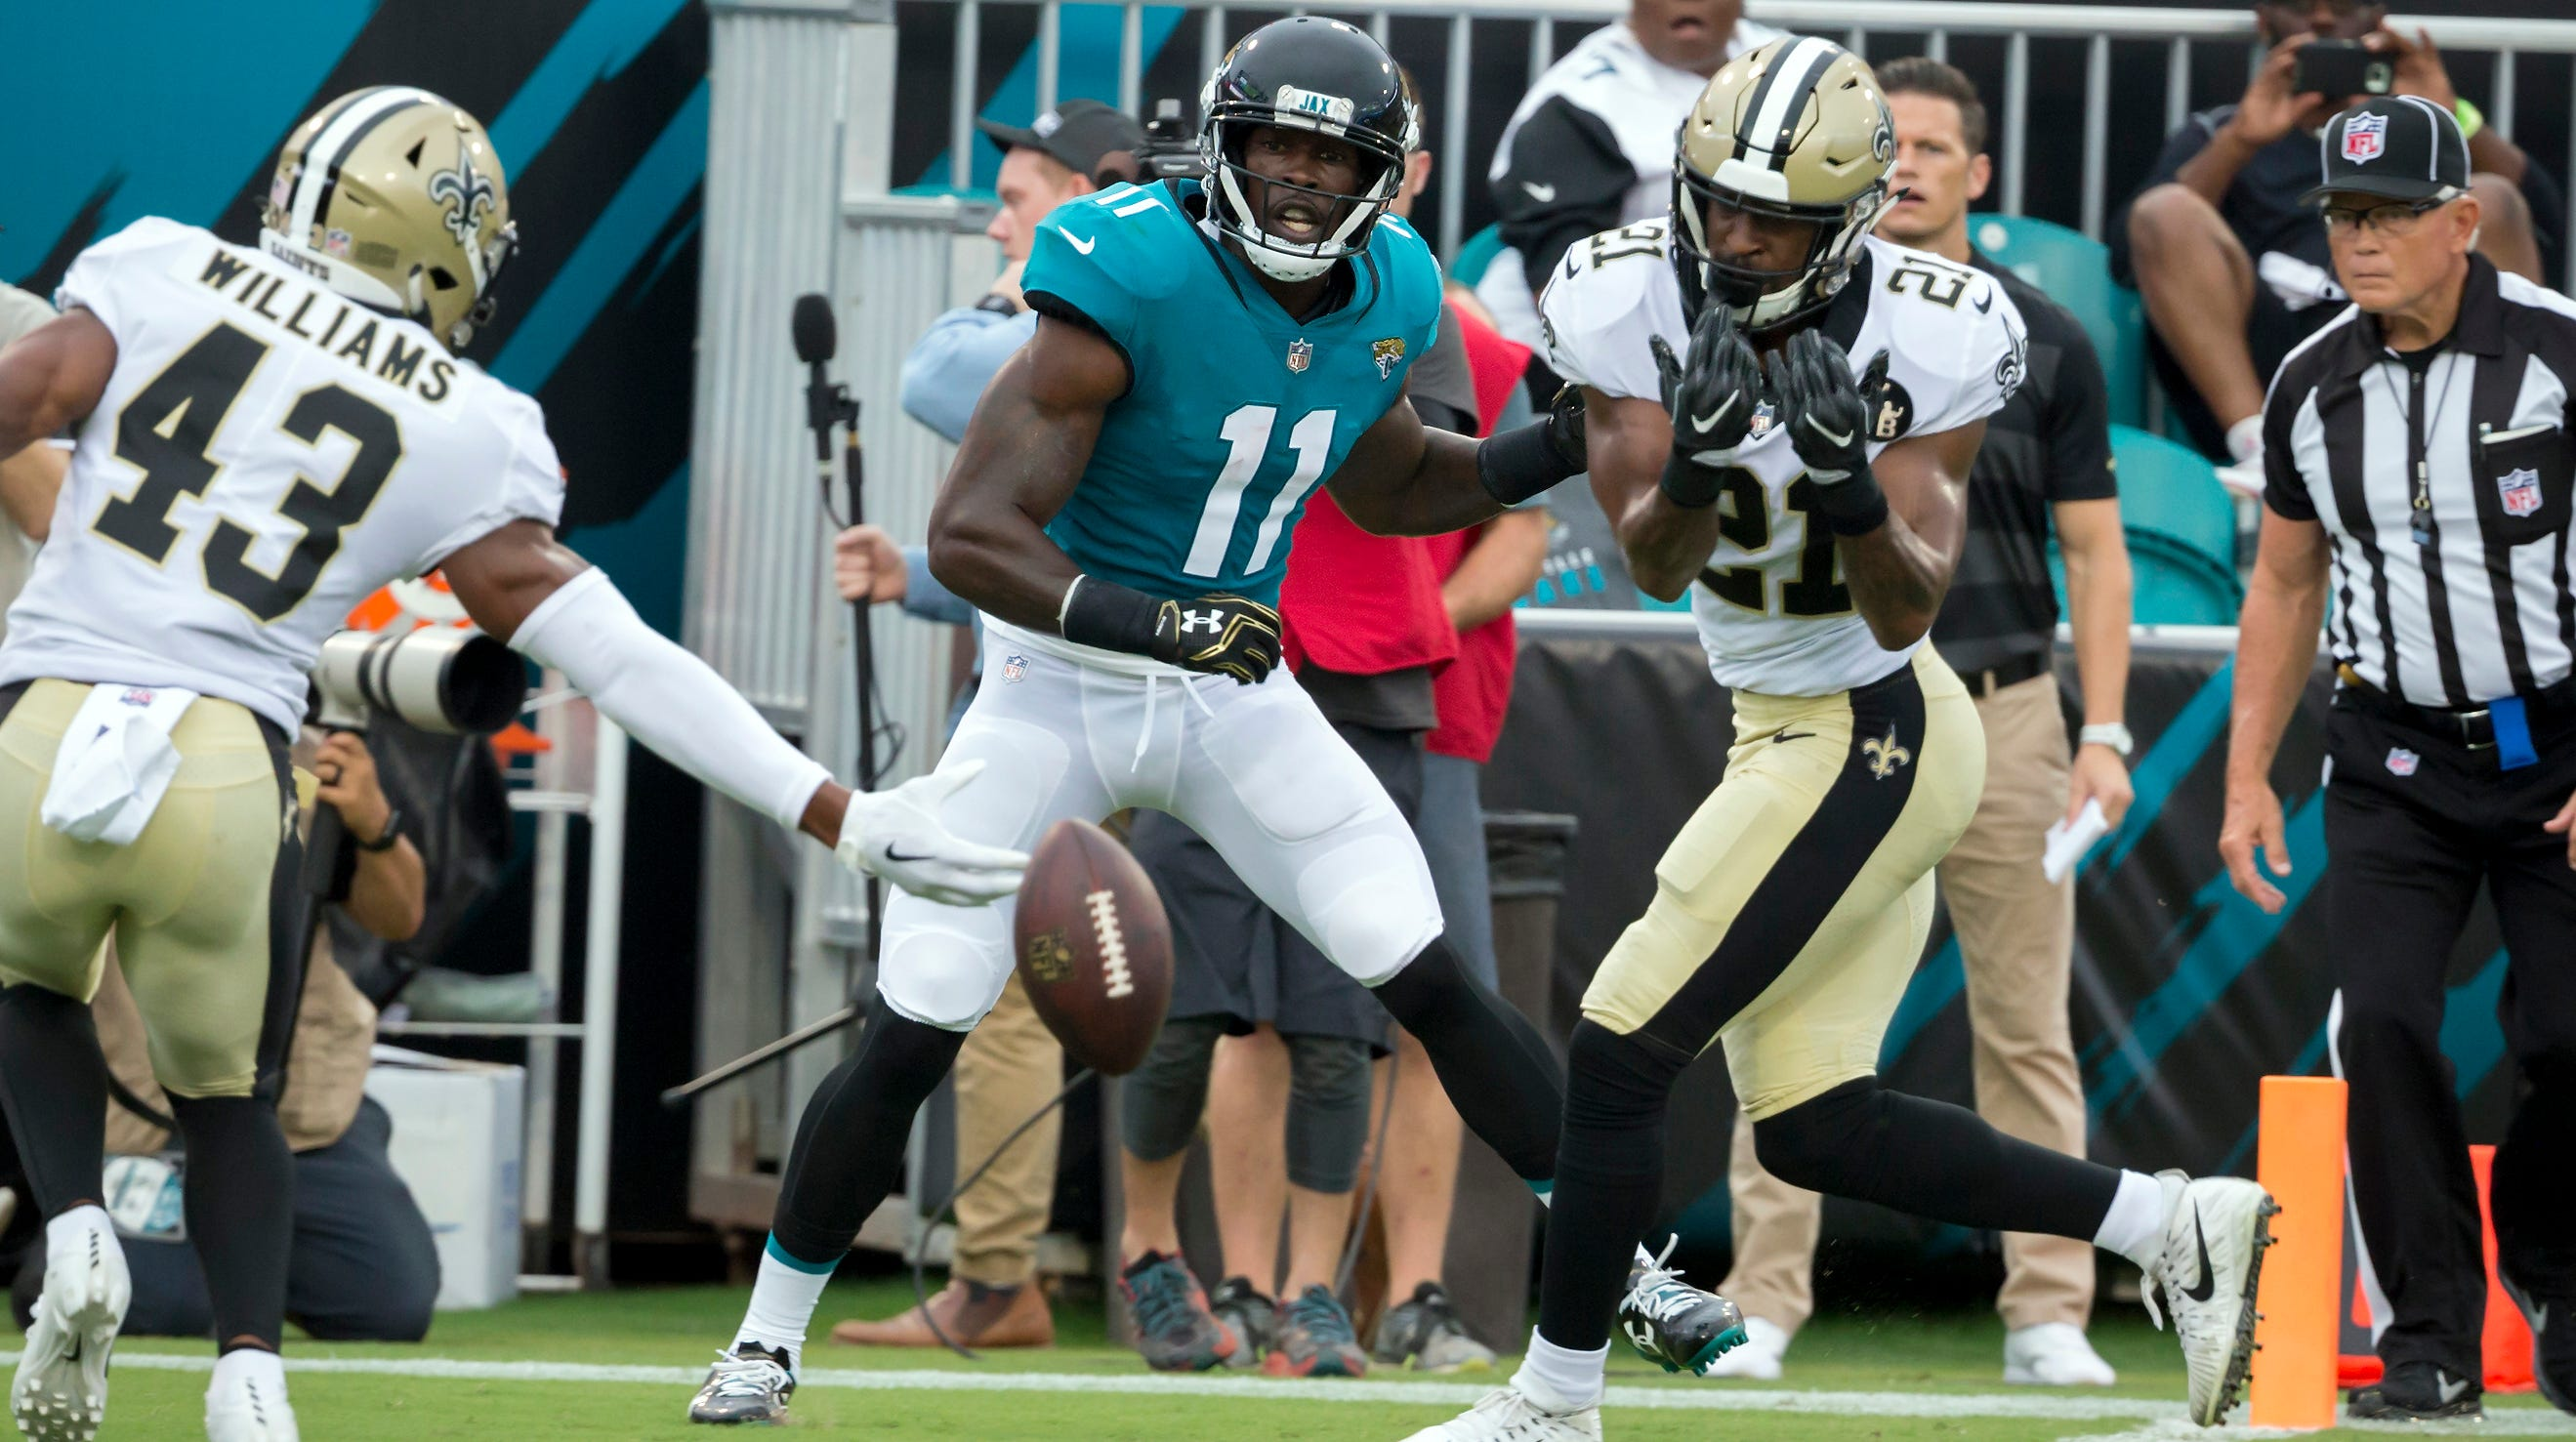 Cornerback returns to New Orleans after successful stint in Philadelpia.